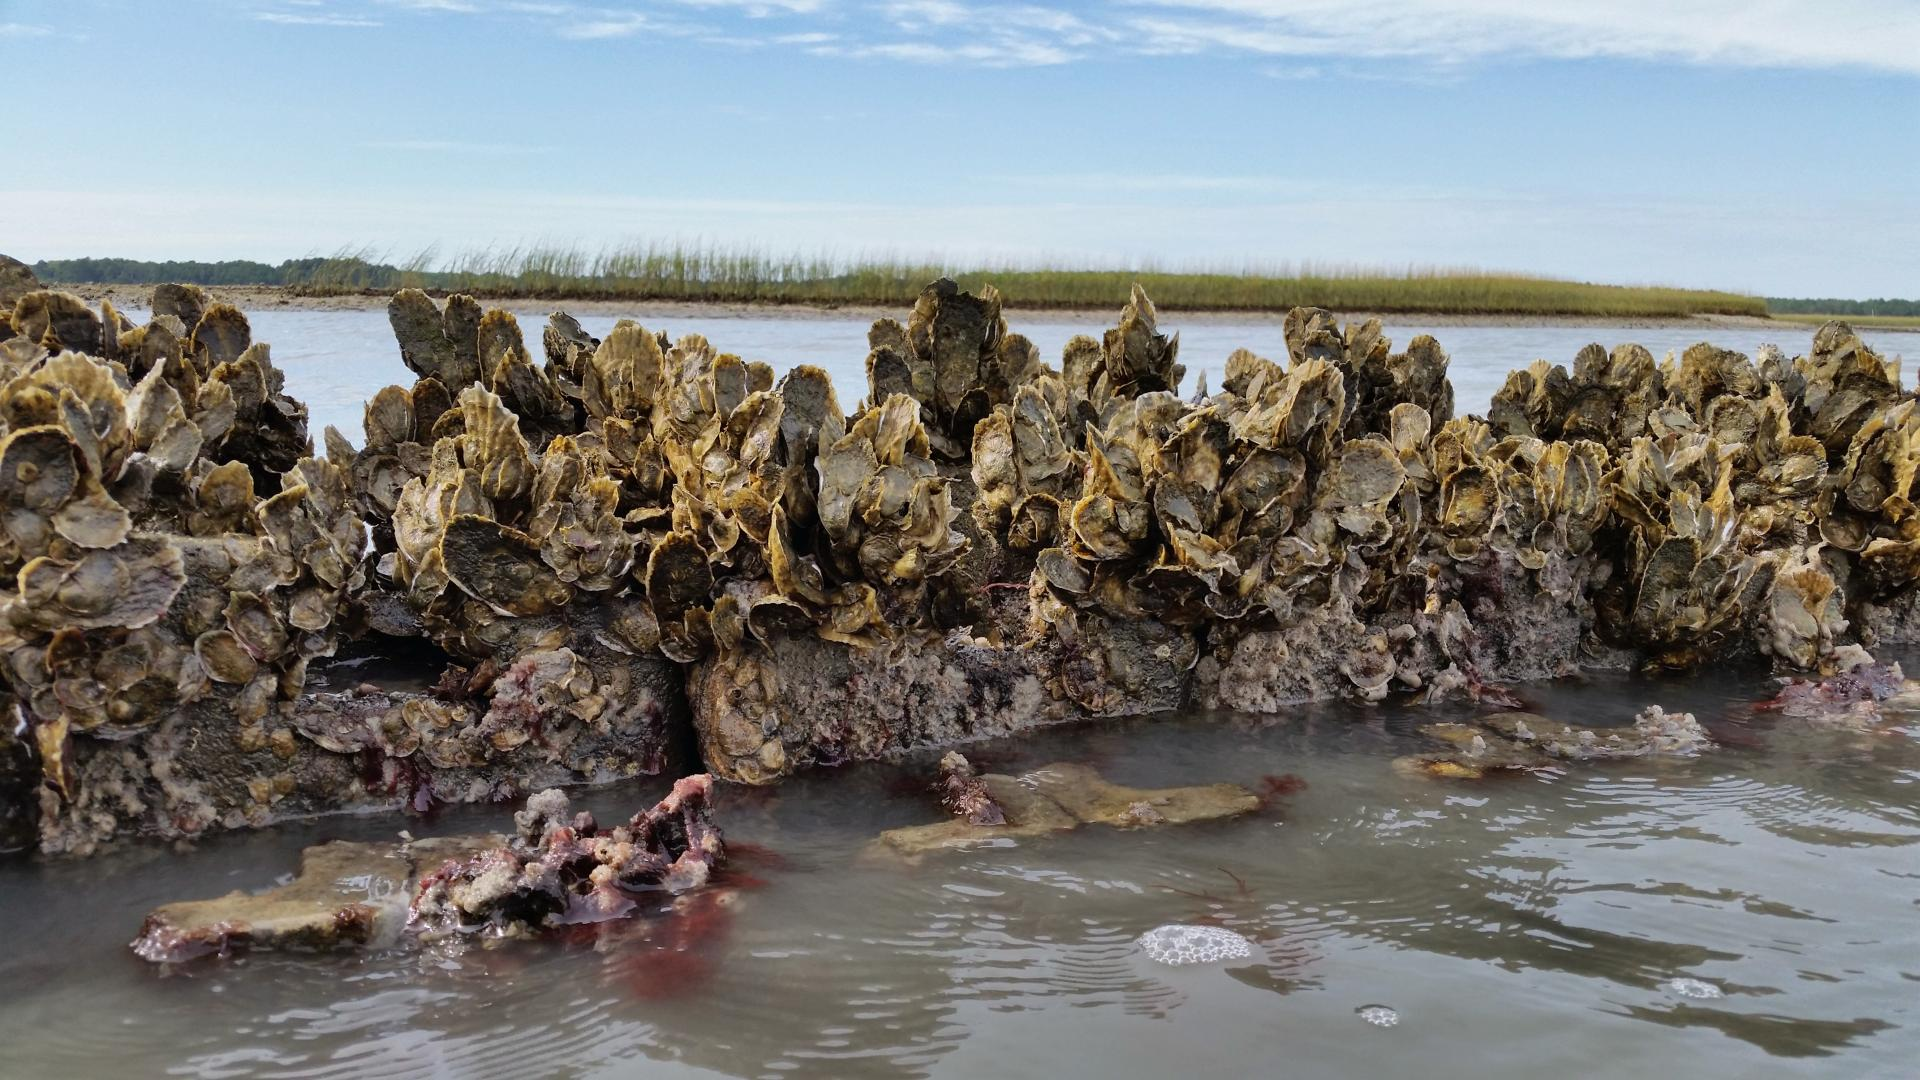 Live oysters growing on oyster castles protecting salt marsh in the background at Box Tree Oyster Sanctuary. Photo credit: Bowdoin Lusk